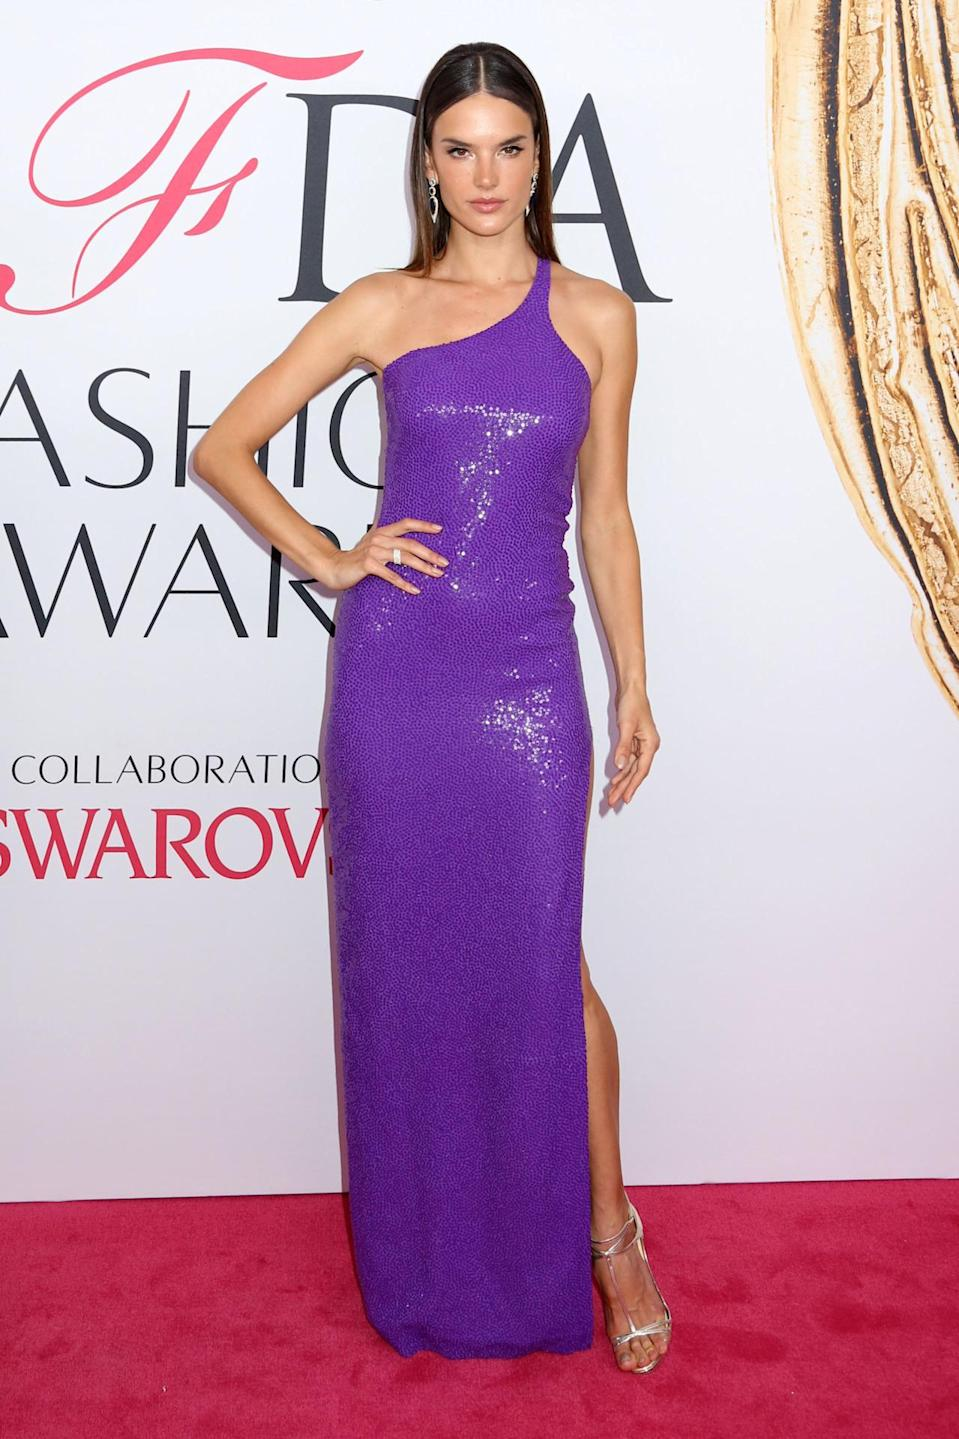 <p>The Victoria's Secret model has her own clothing and cosmetics line. <i>[Photo: PA]</i></p>